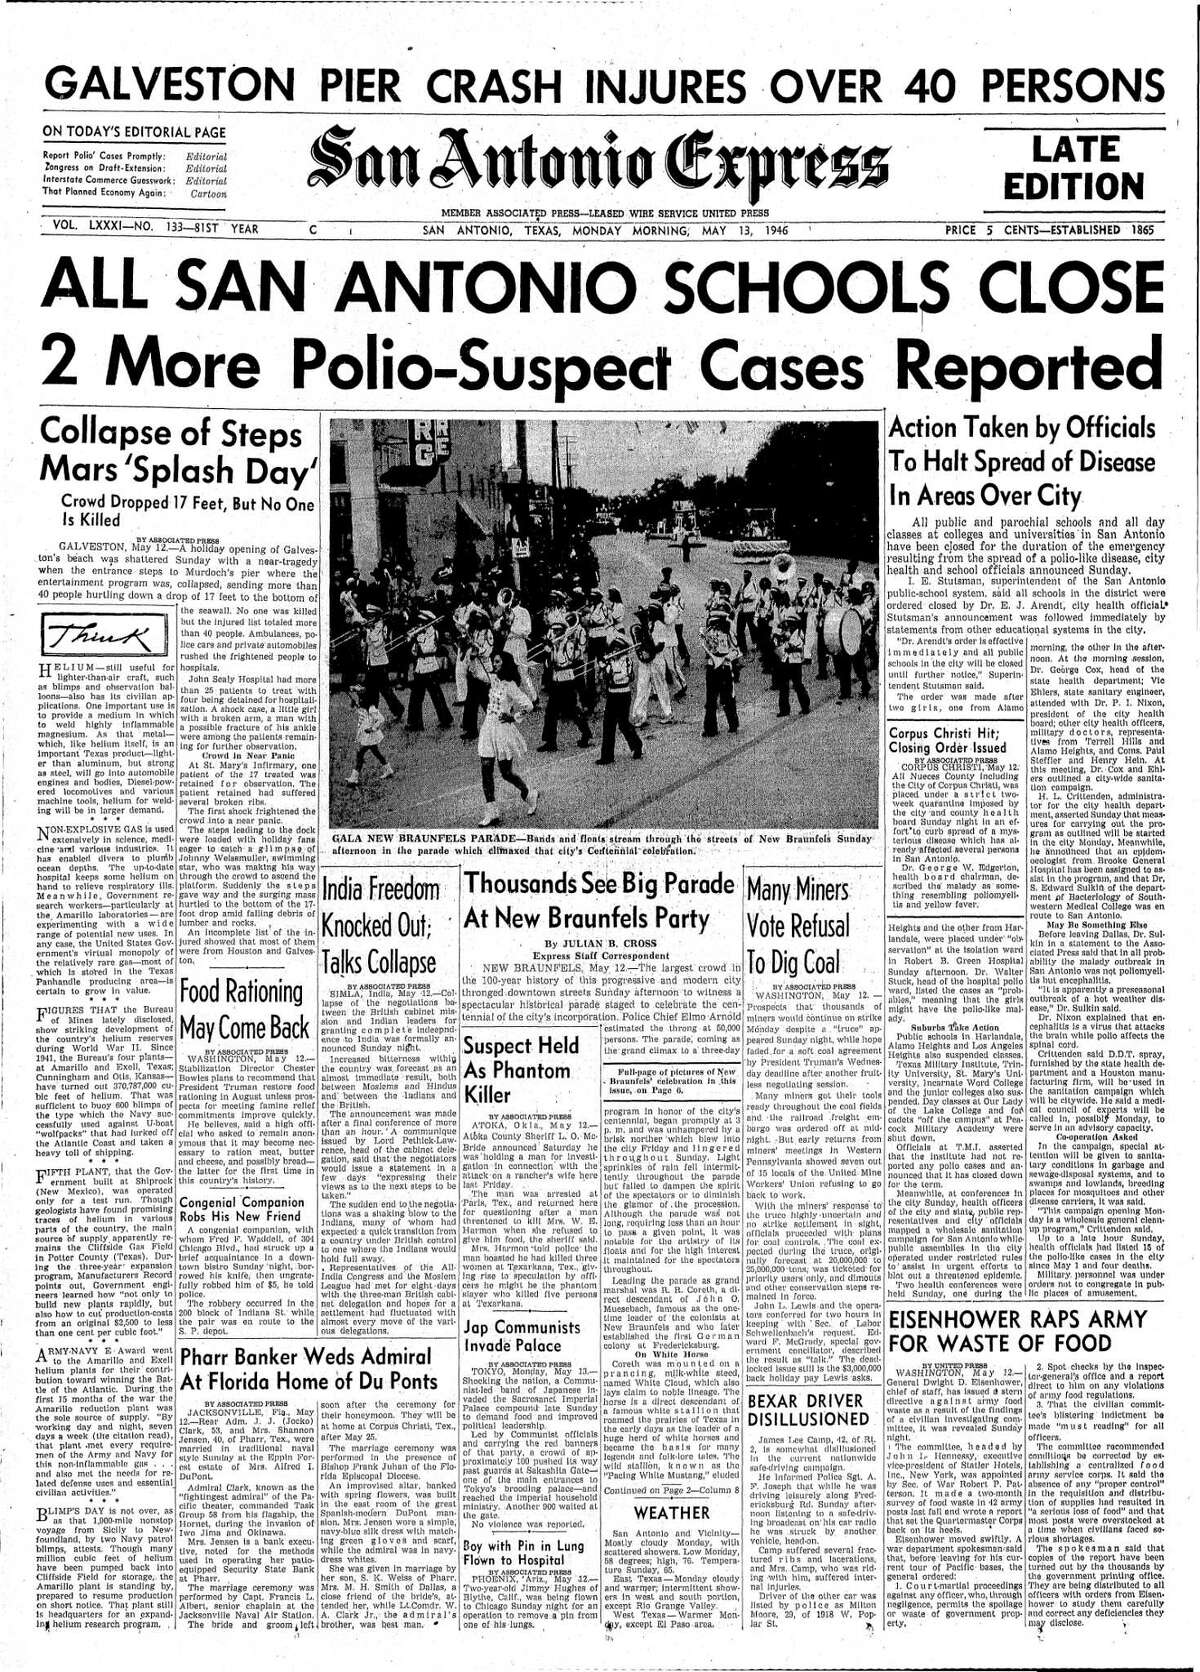 The May 13, 1946, San Antonio Express carried a big headline about a polio epidemic closing local schools. The schools were closed for more than a week.